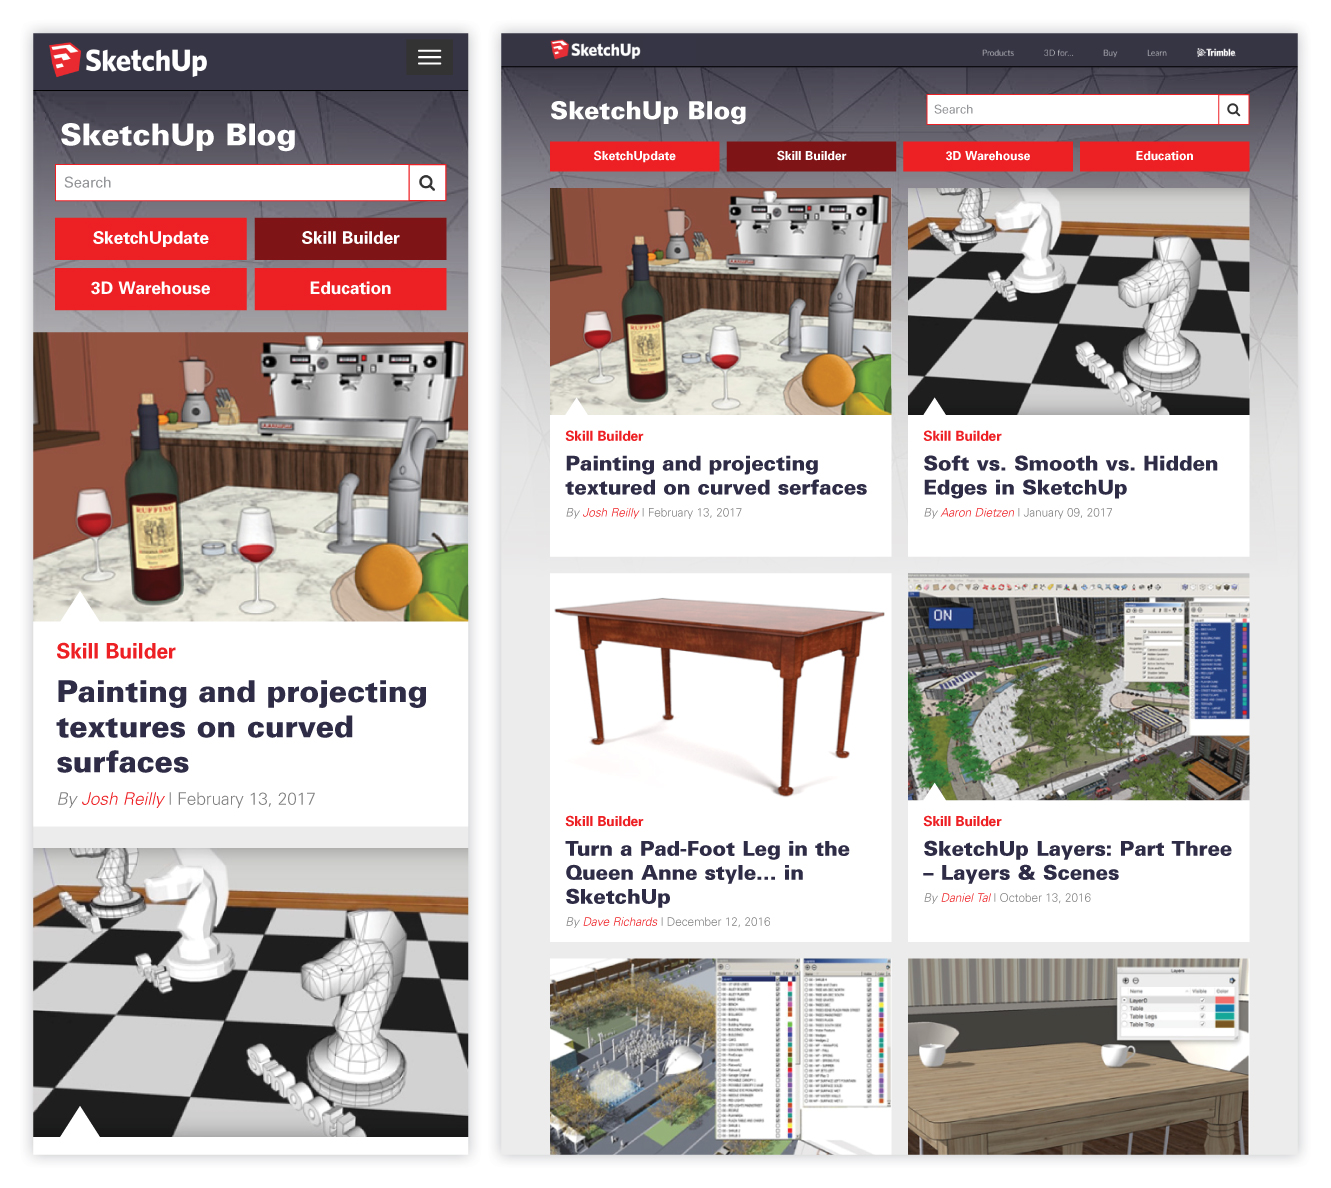 SketchUp Blog Case Study and Redesign 4 of 6